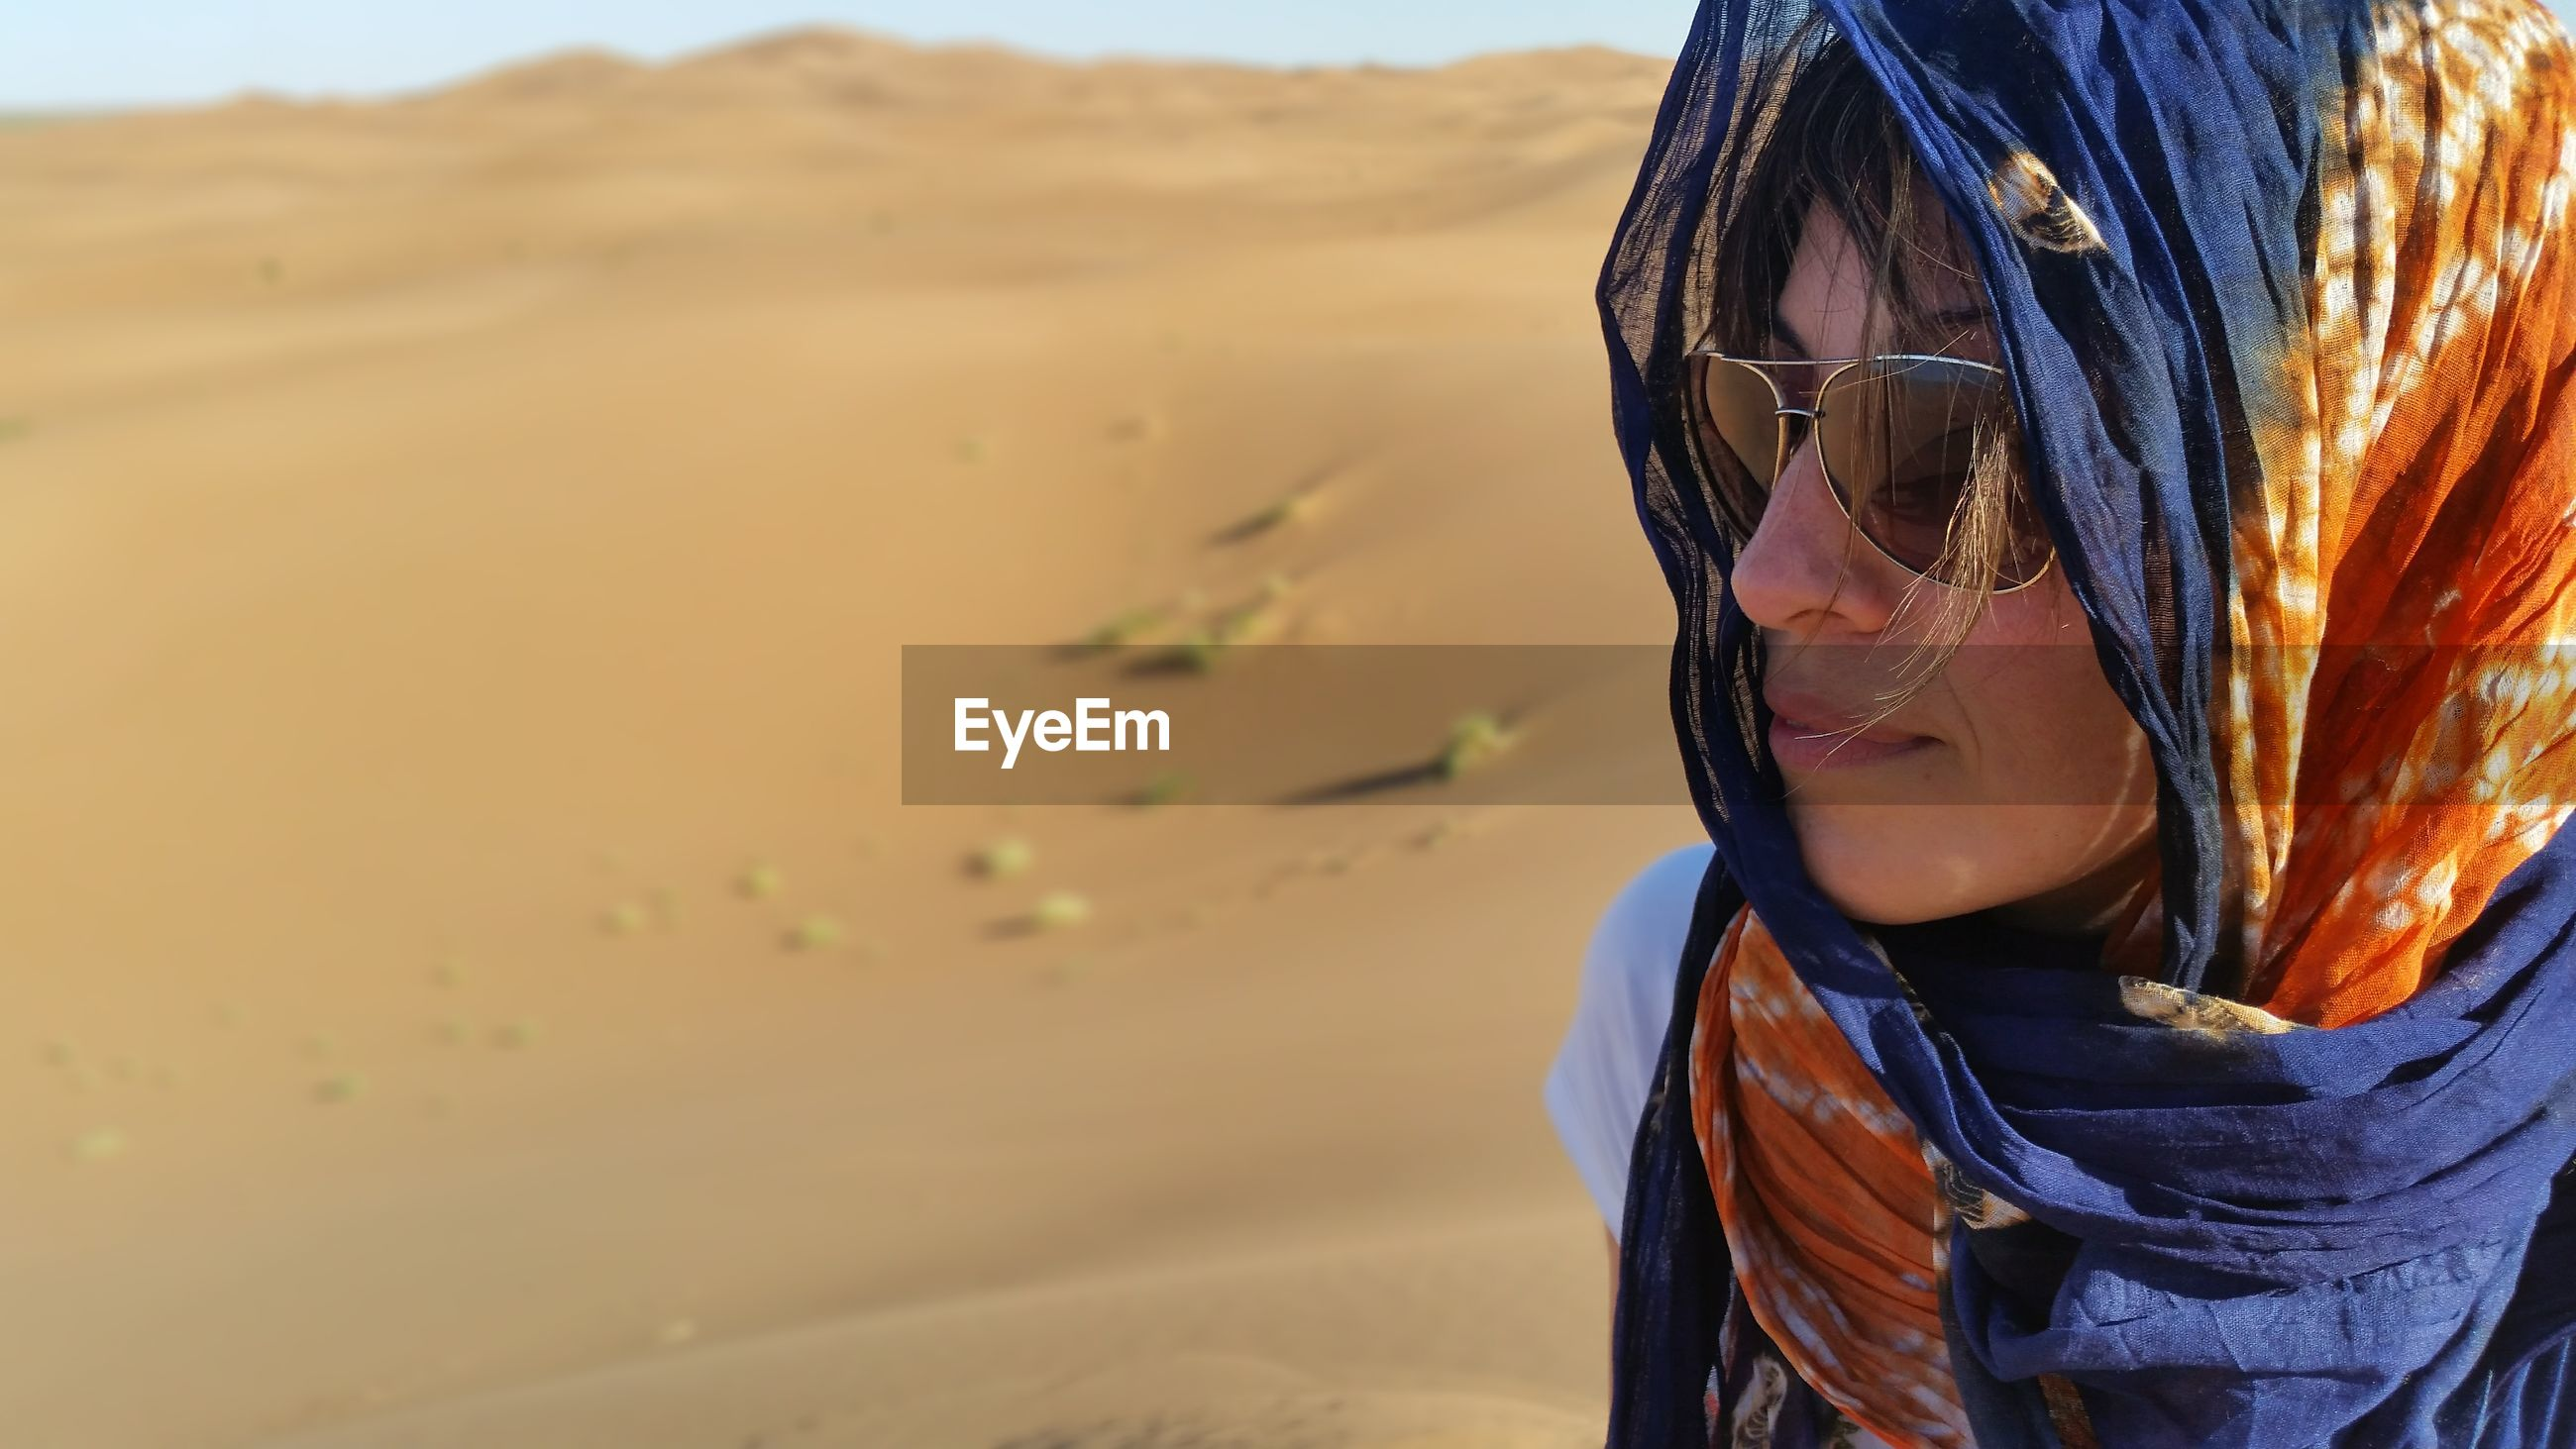 Close-up of woman wearing sunglasses and scarf at desert